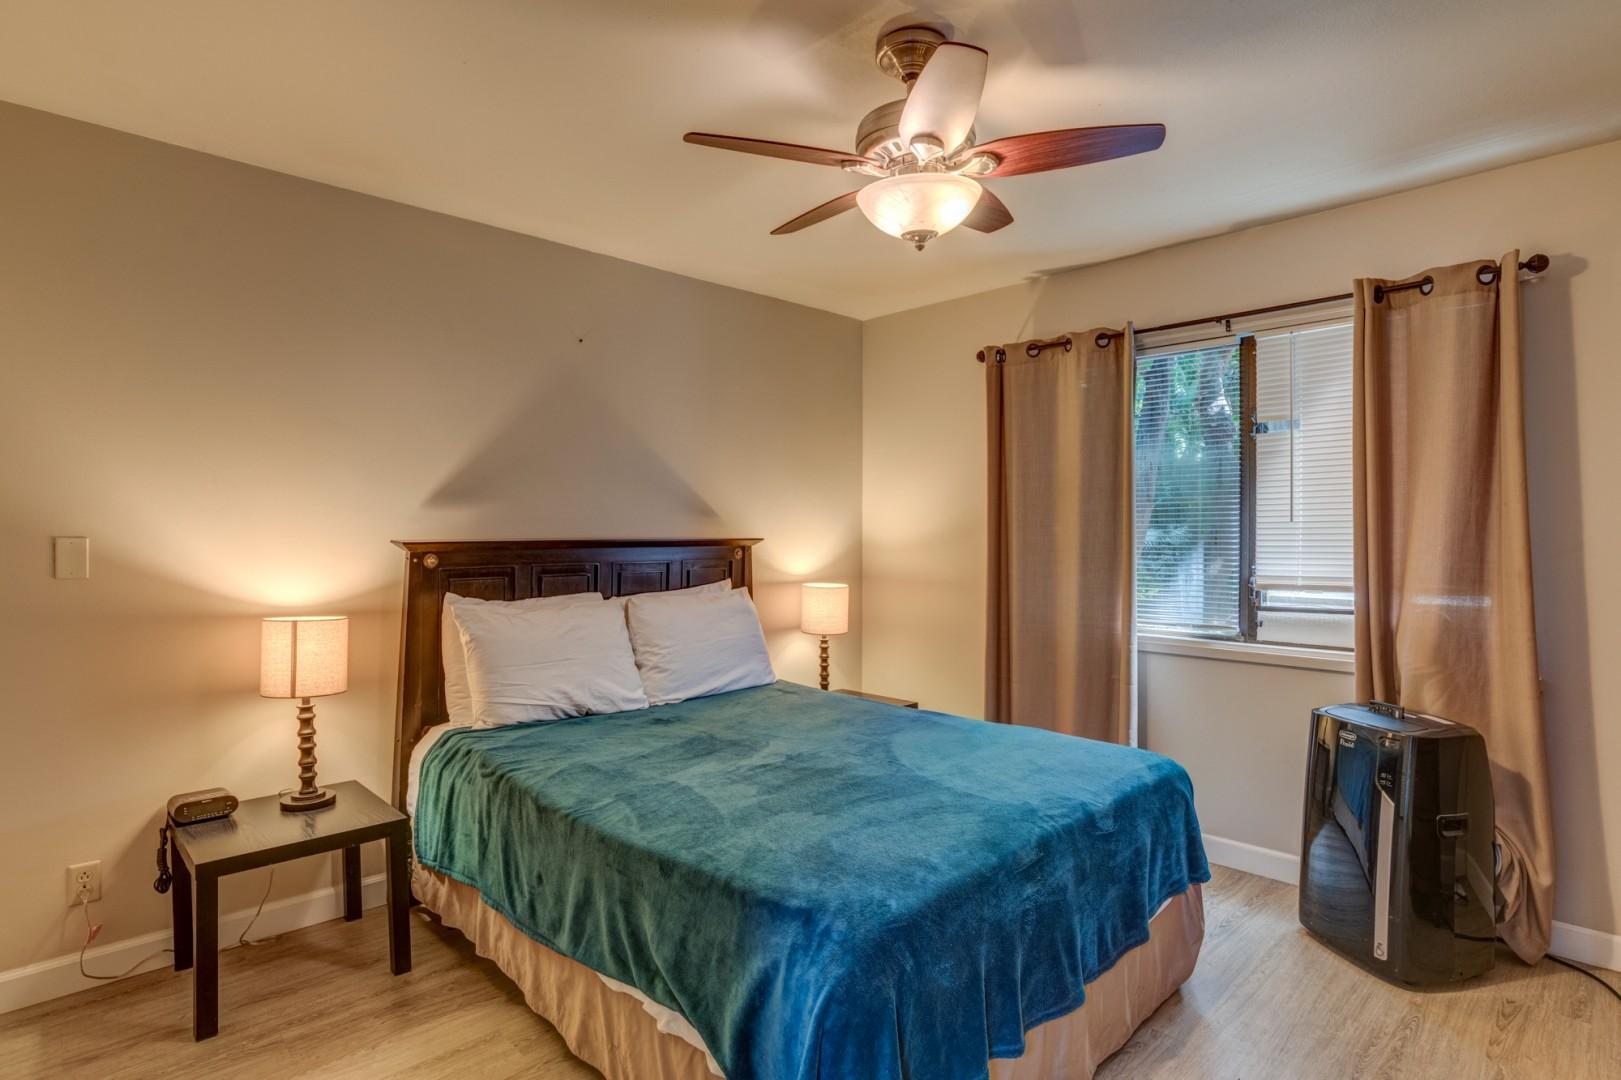 Queen size bed with portable AC